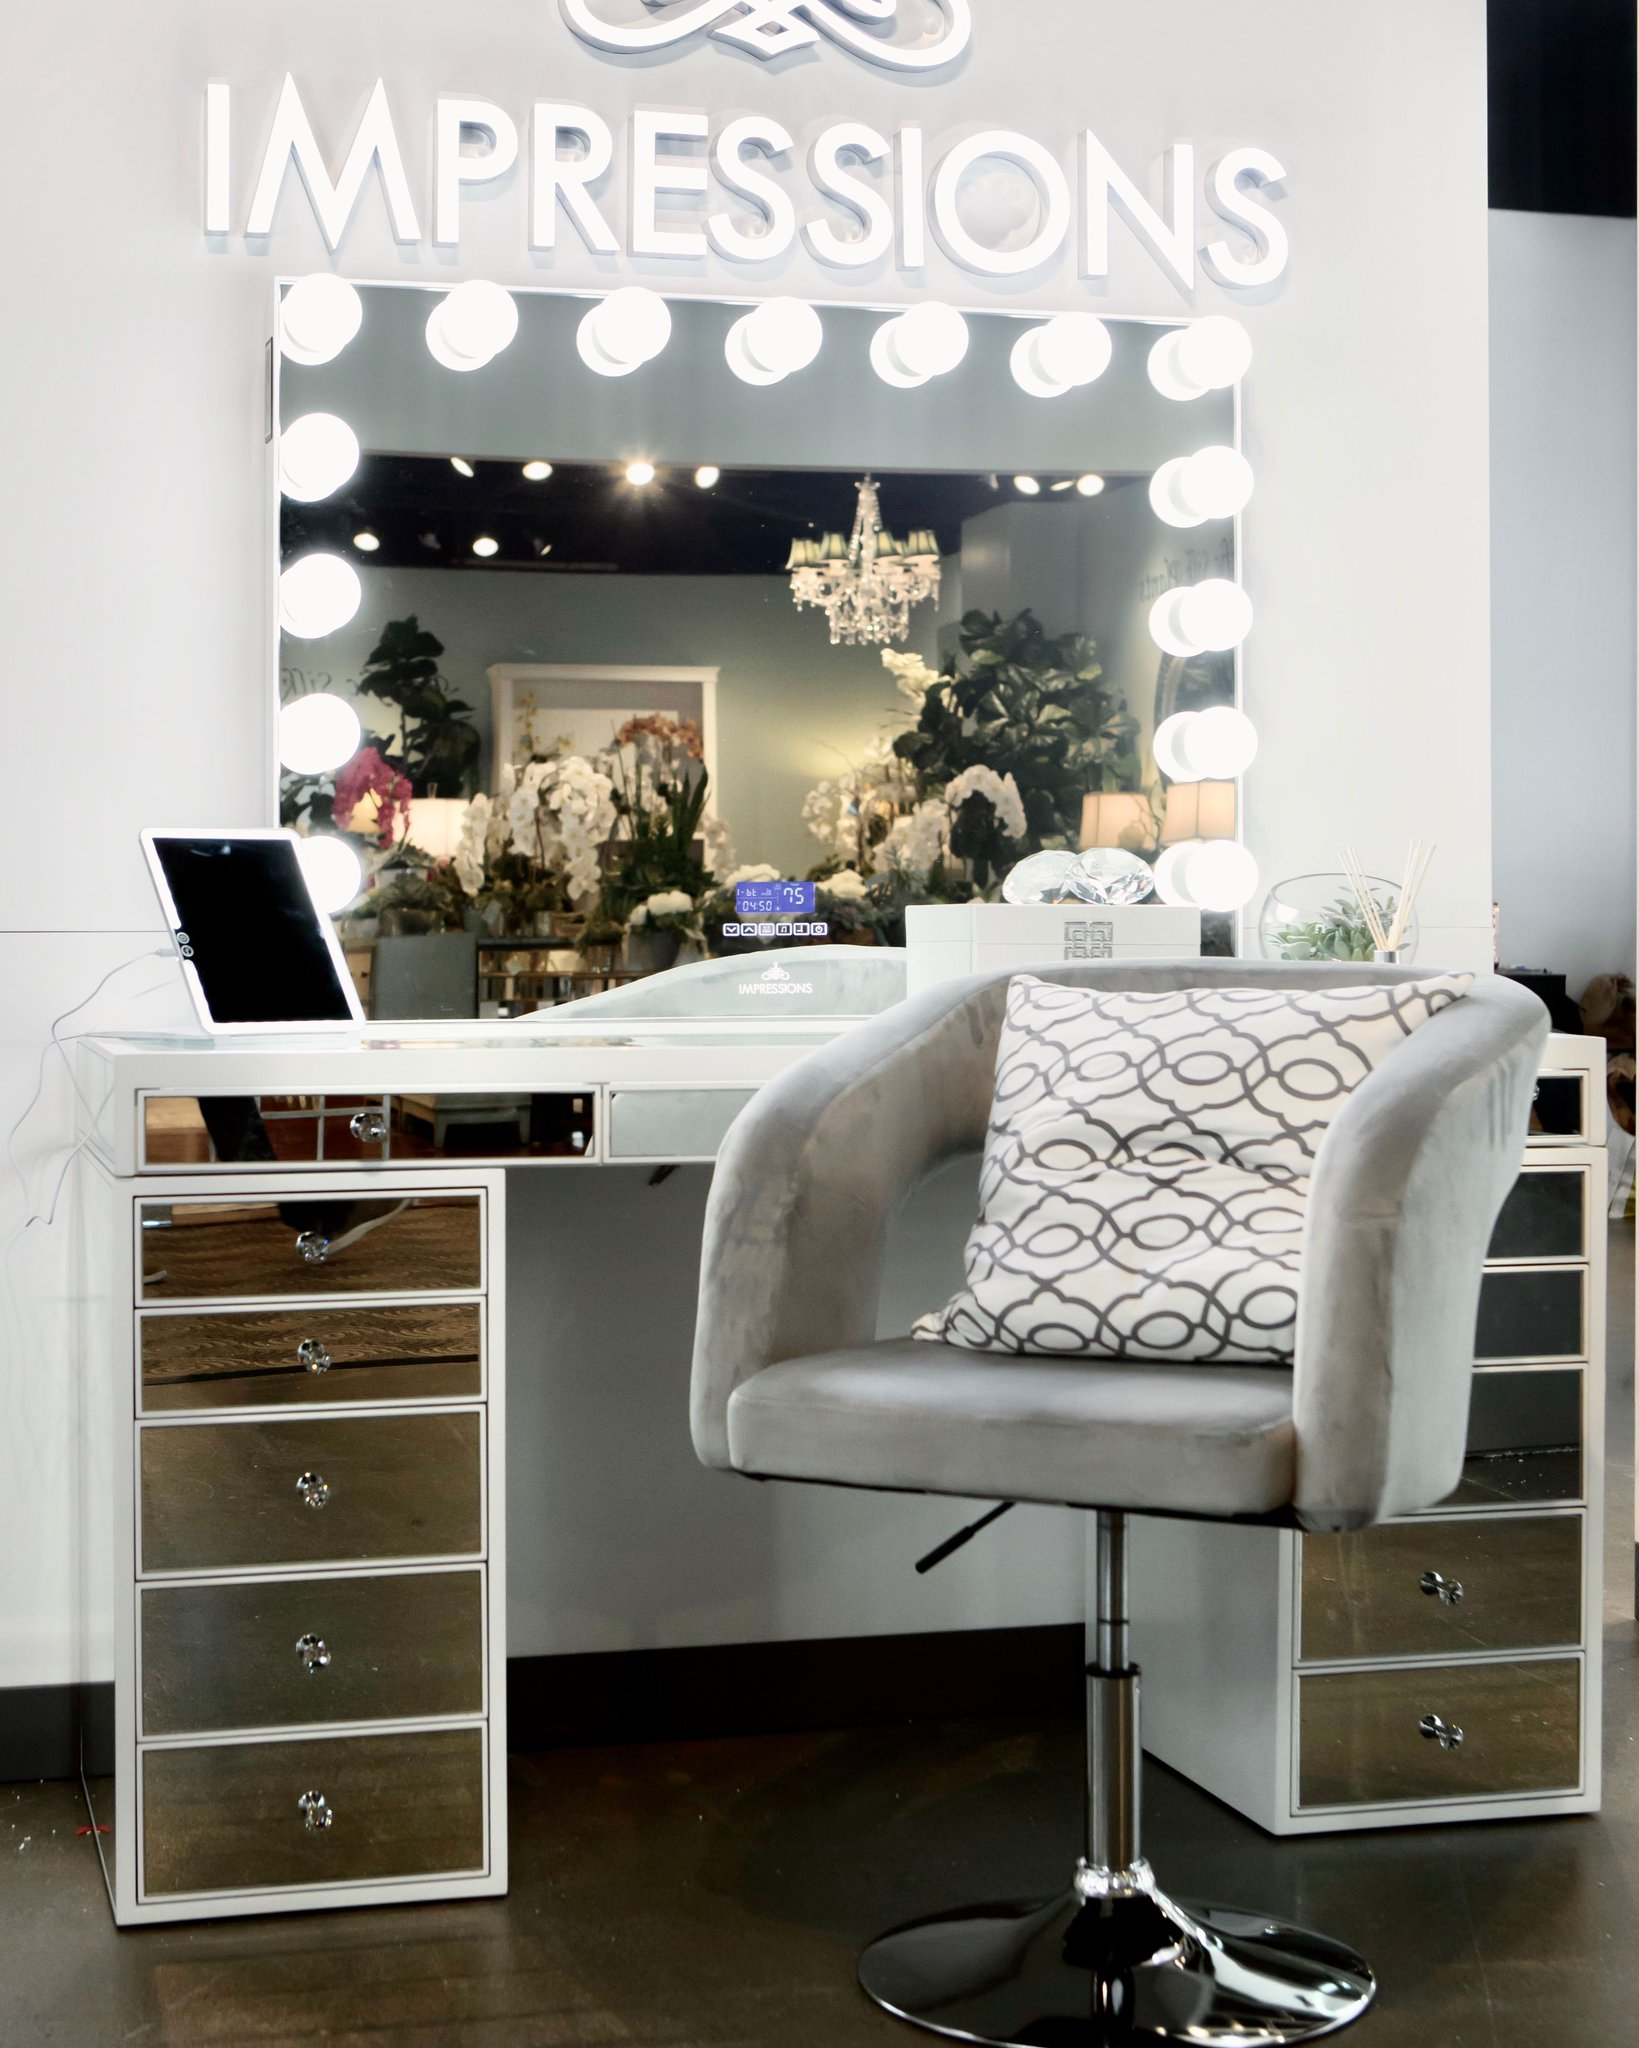 Impressions Vanity On Twitter So Chic And So Clean The Slaystation Pro Premium Mirrored Vanity Table In White Pairs Well With Ronni Modern Vanity Chair Tap To Shop Https T Co G9sngfgssv